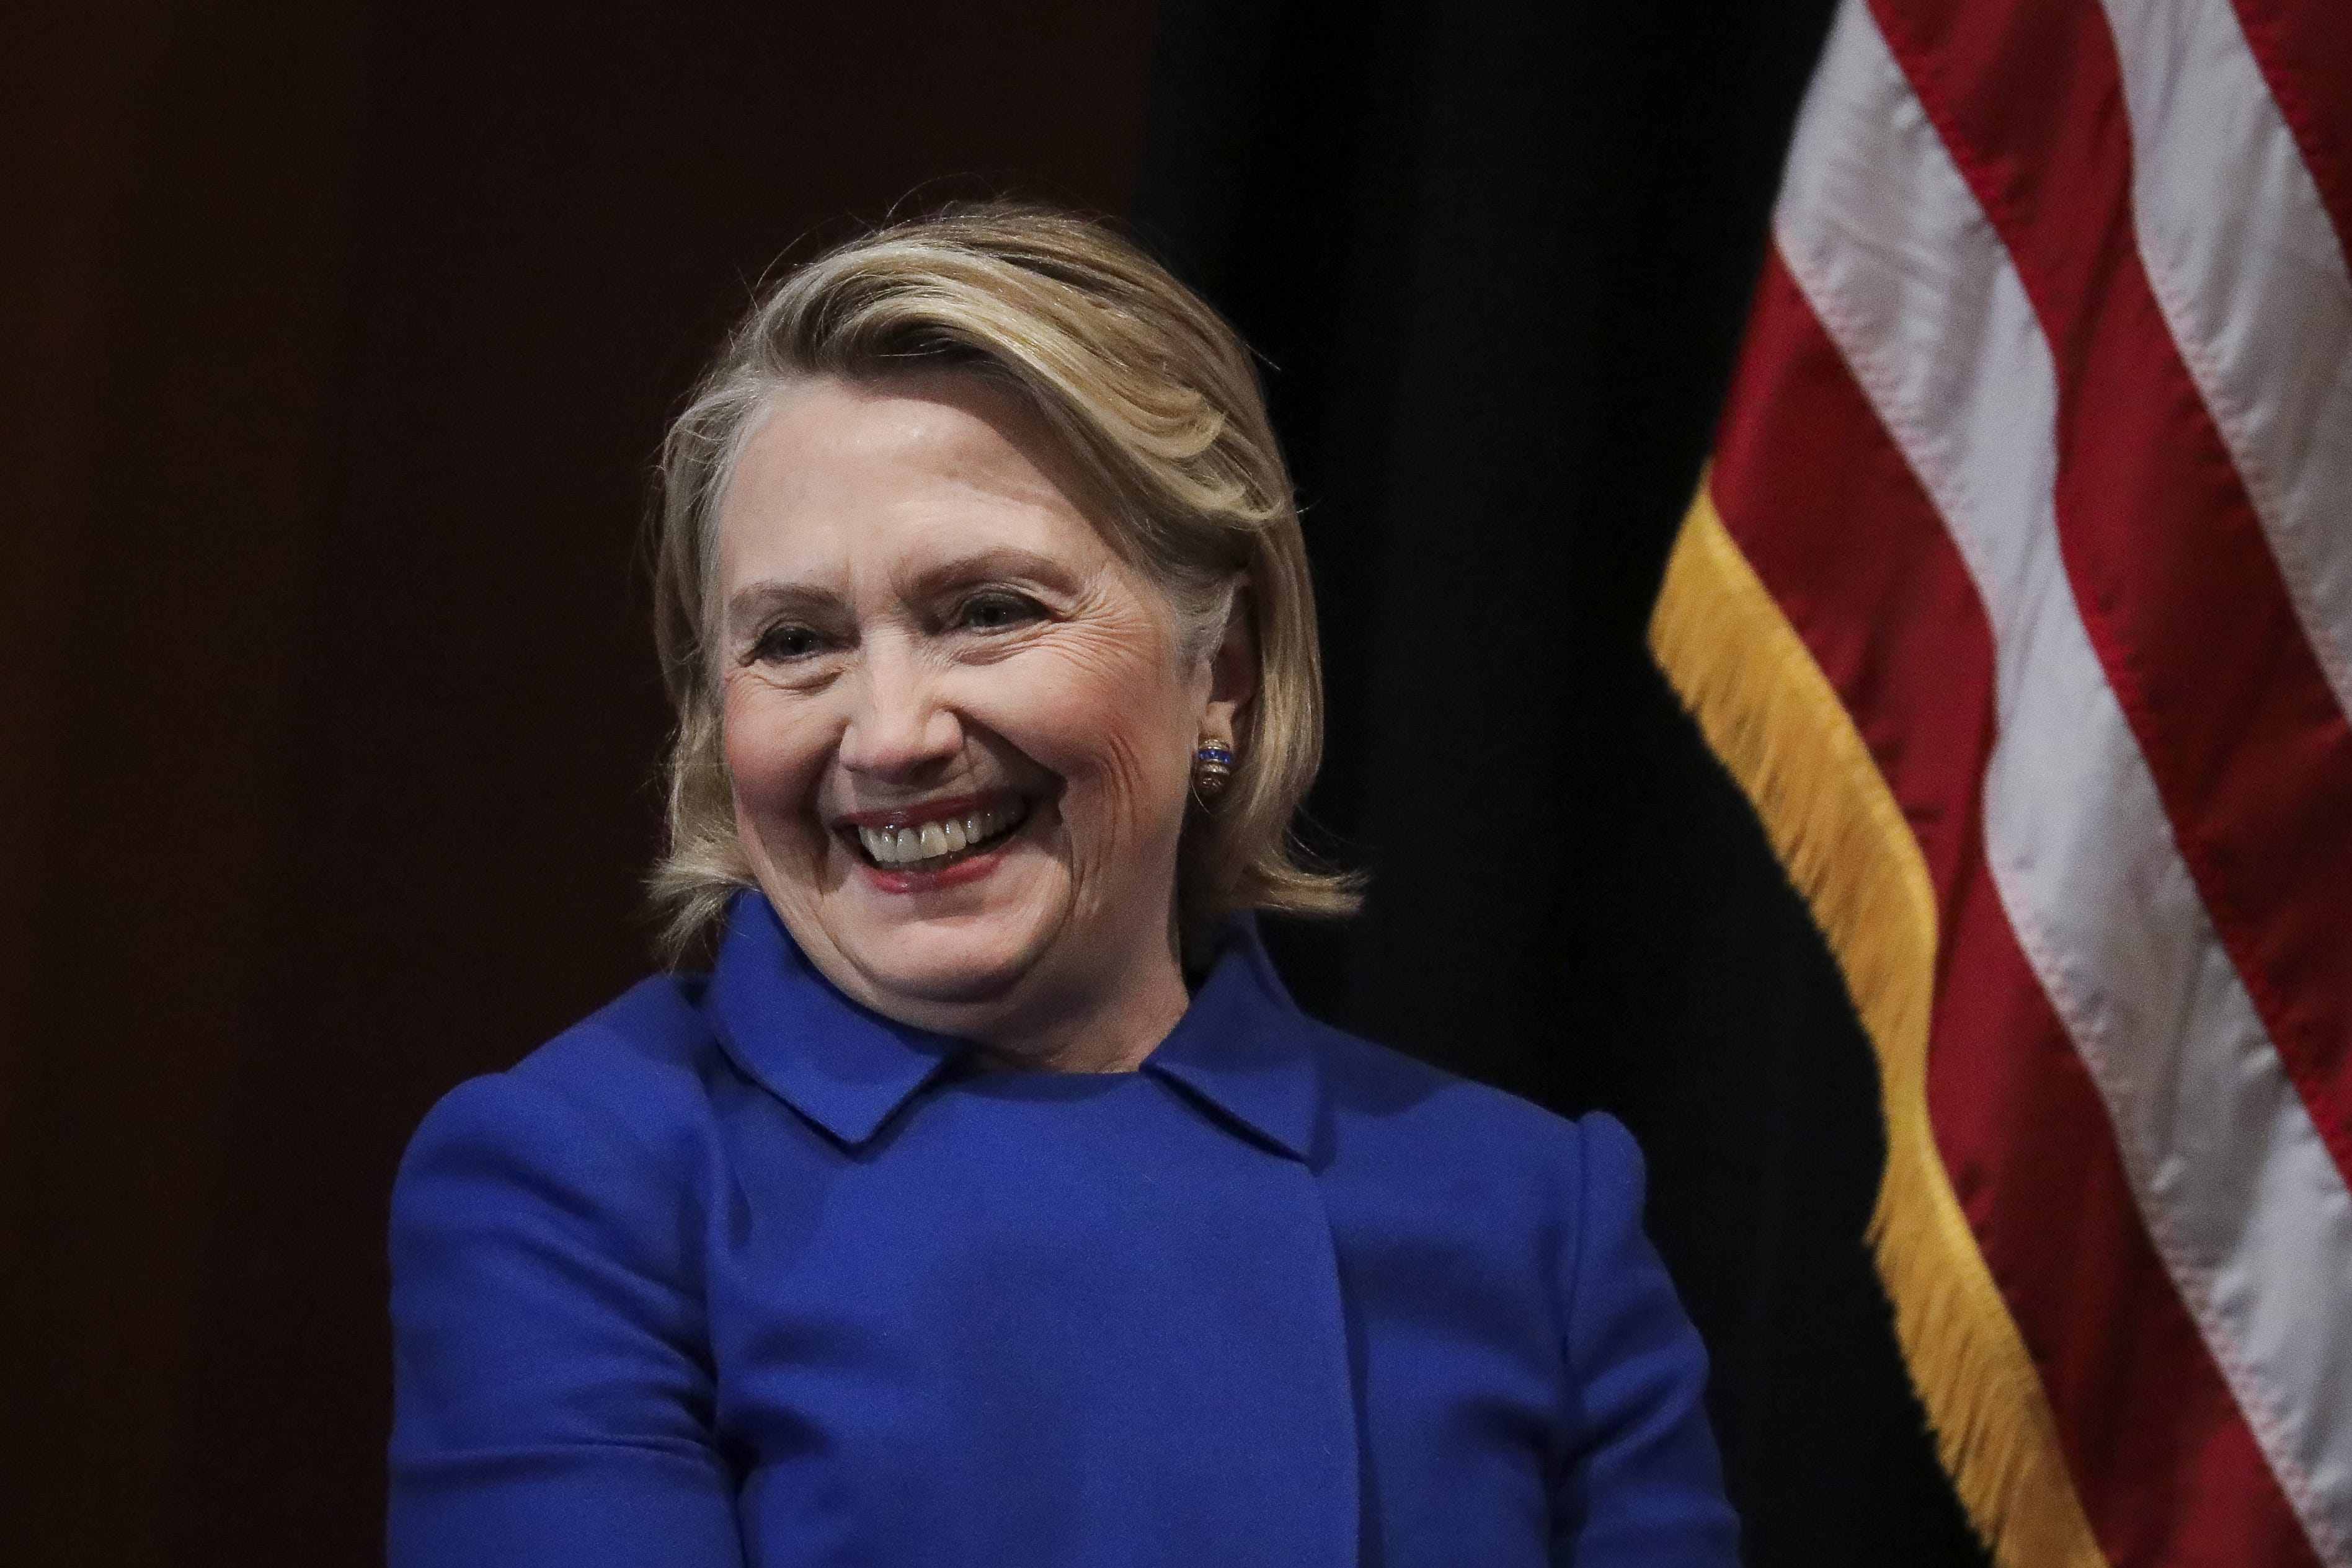 'Like I said: A puppet,' Hillary Clinton tweets after recent reports about Trump, Russia